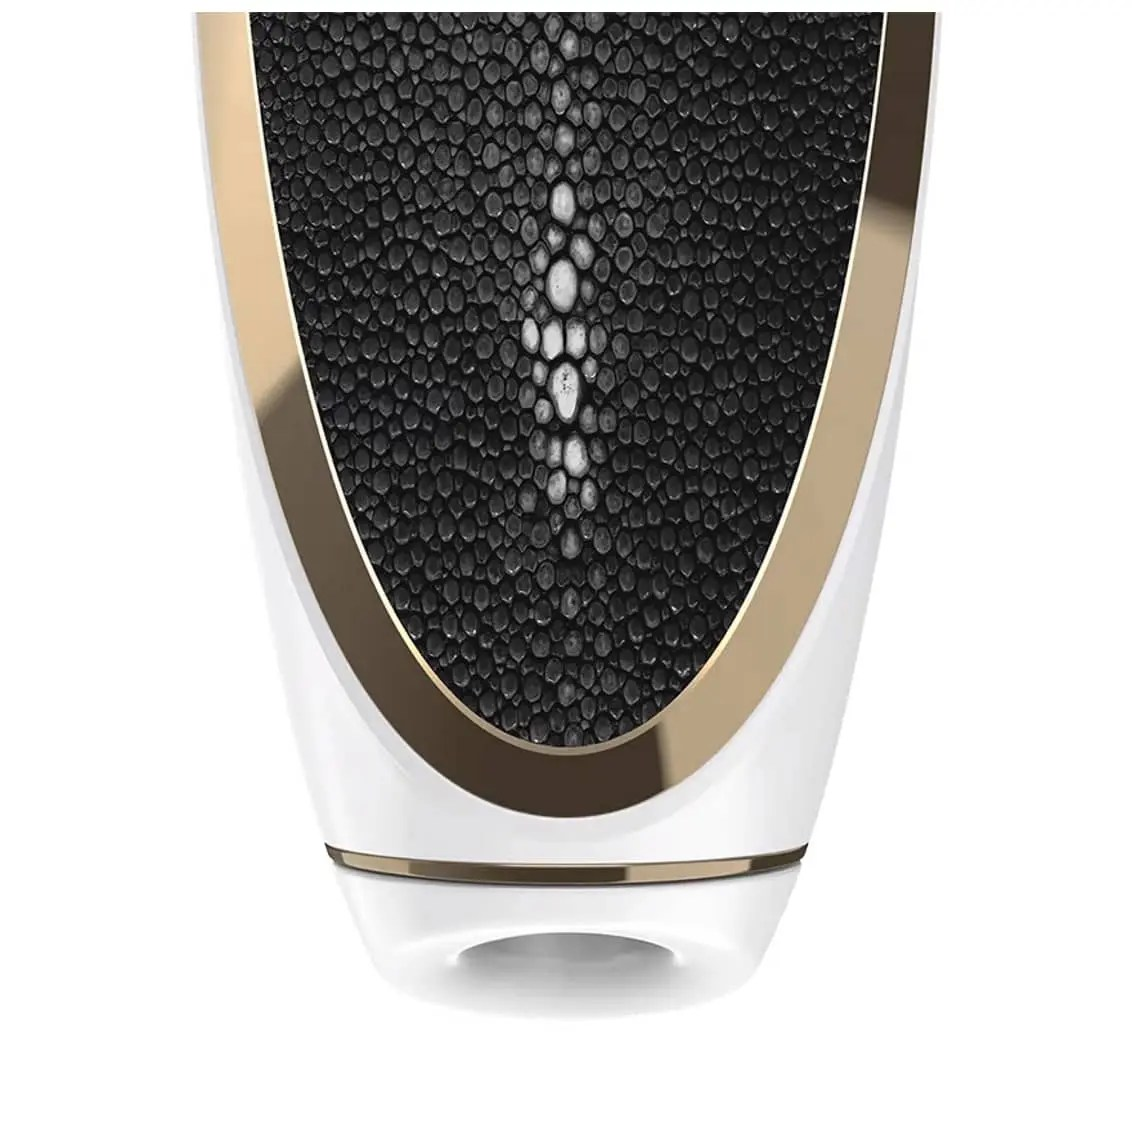 Haute Couture Luxury Air Pulse Vibrator - by Satisfyer